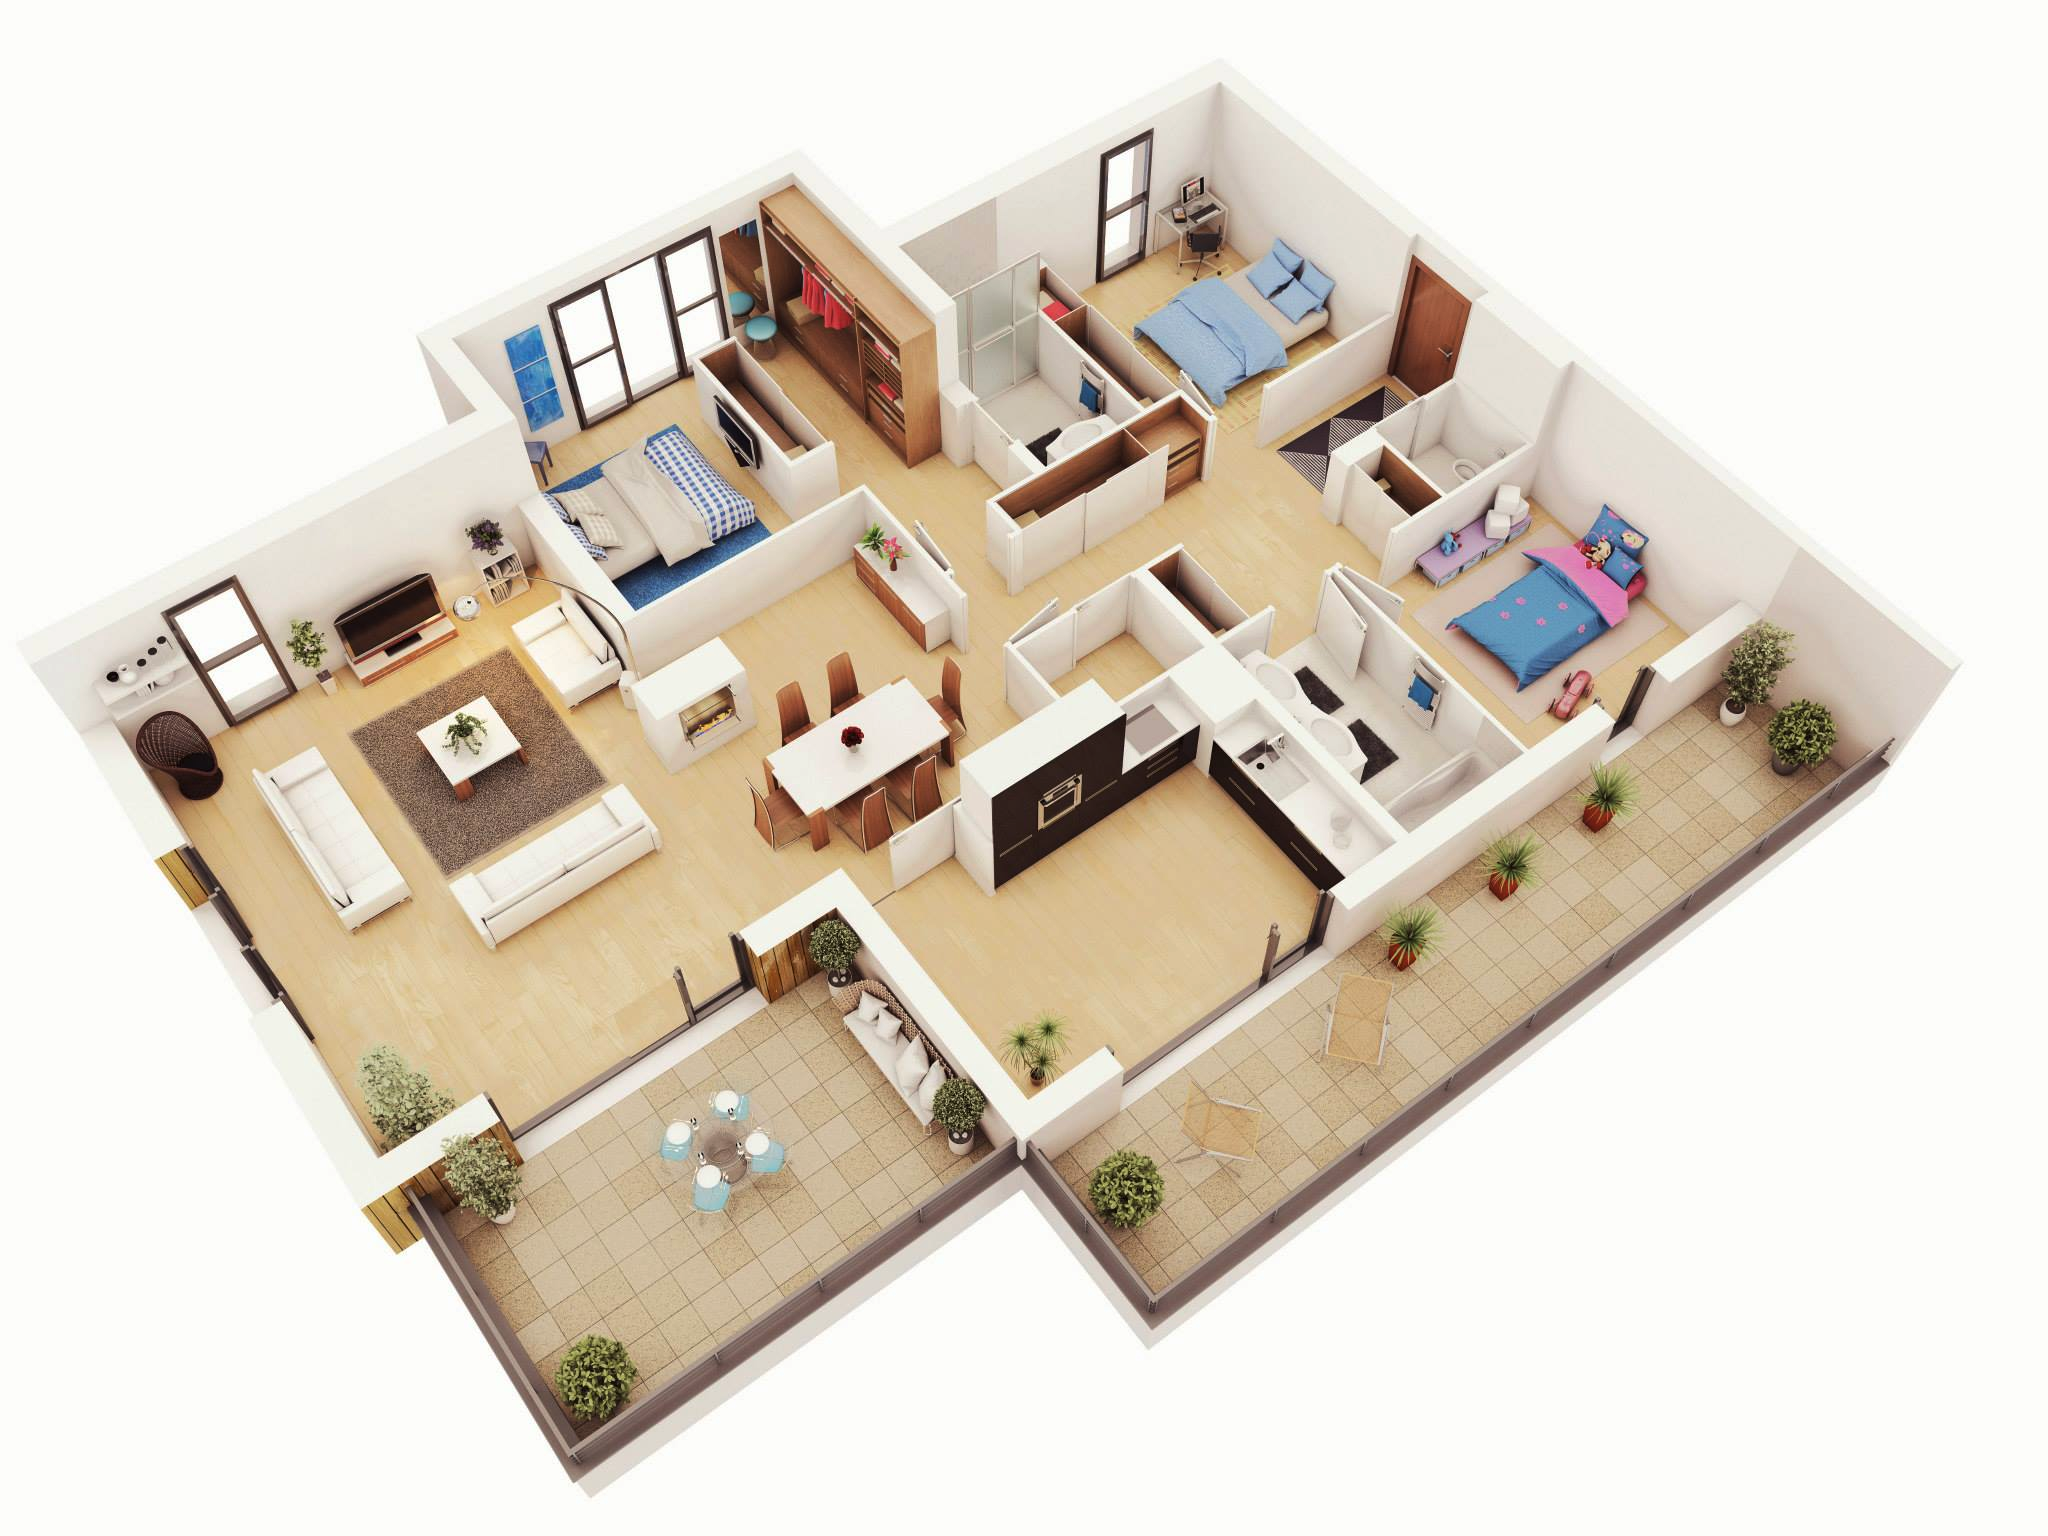 25 more 3 bedroom 3d floor plans for 3bed room house plan image